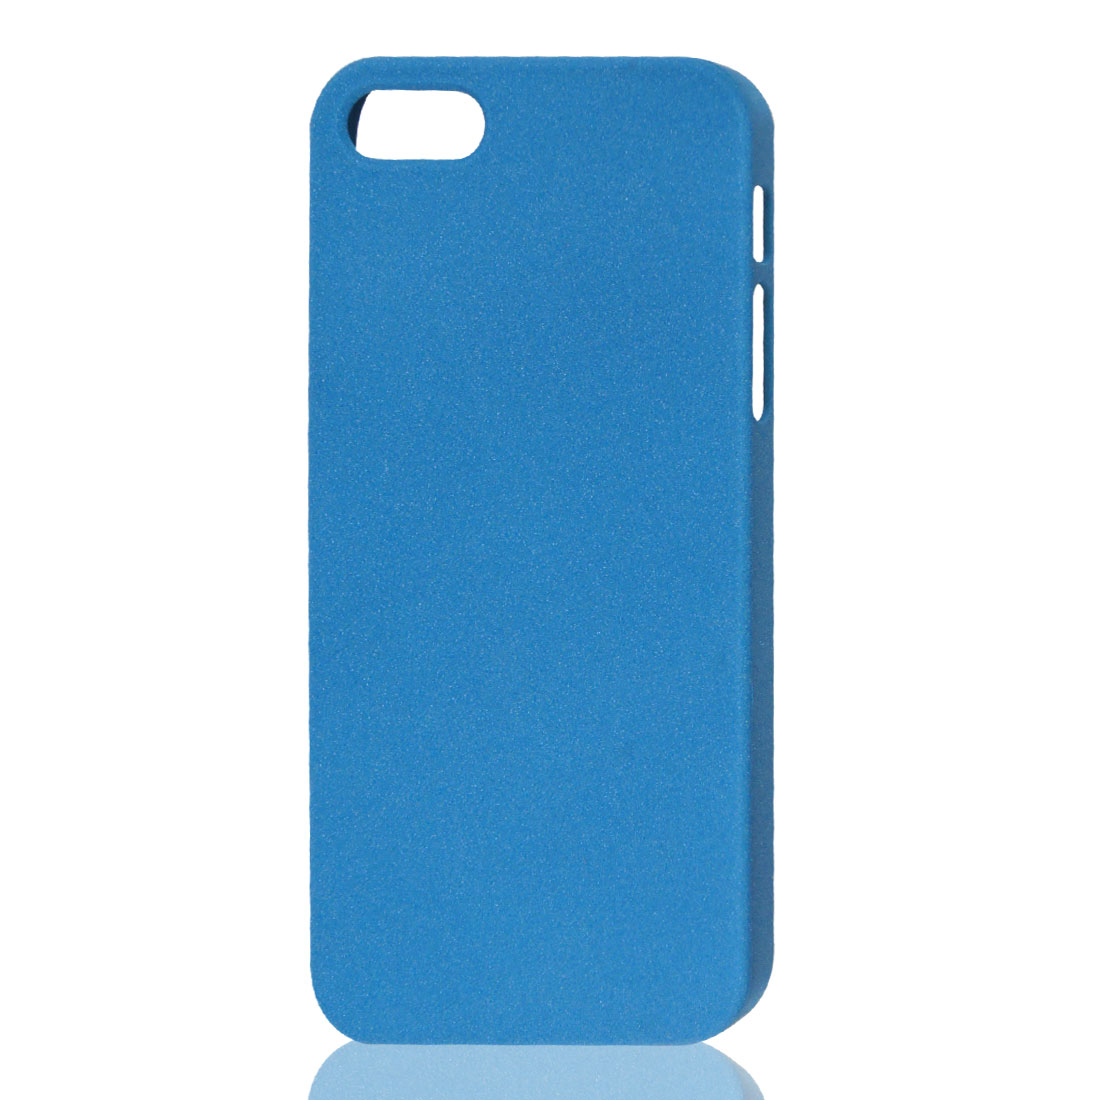 Hard Back Case Protective Cover Teal Blue for iPhone 5 5G 5th